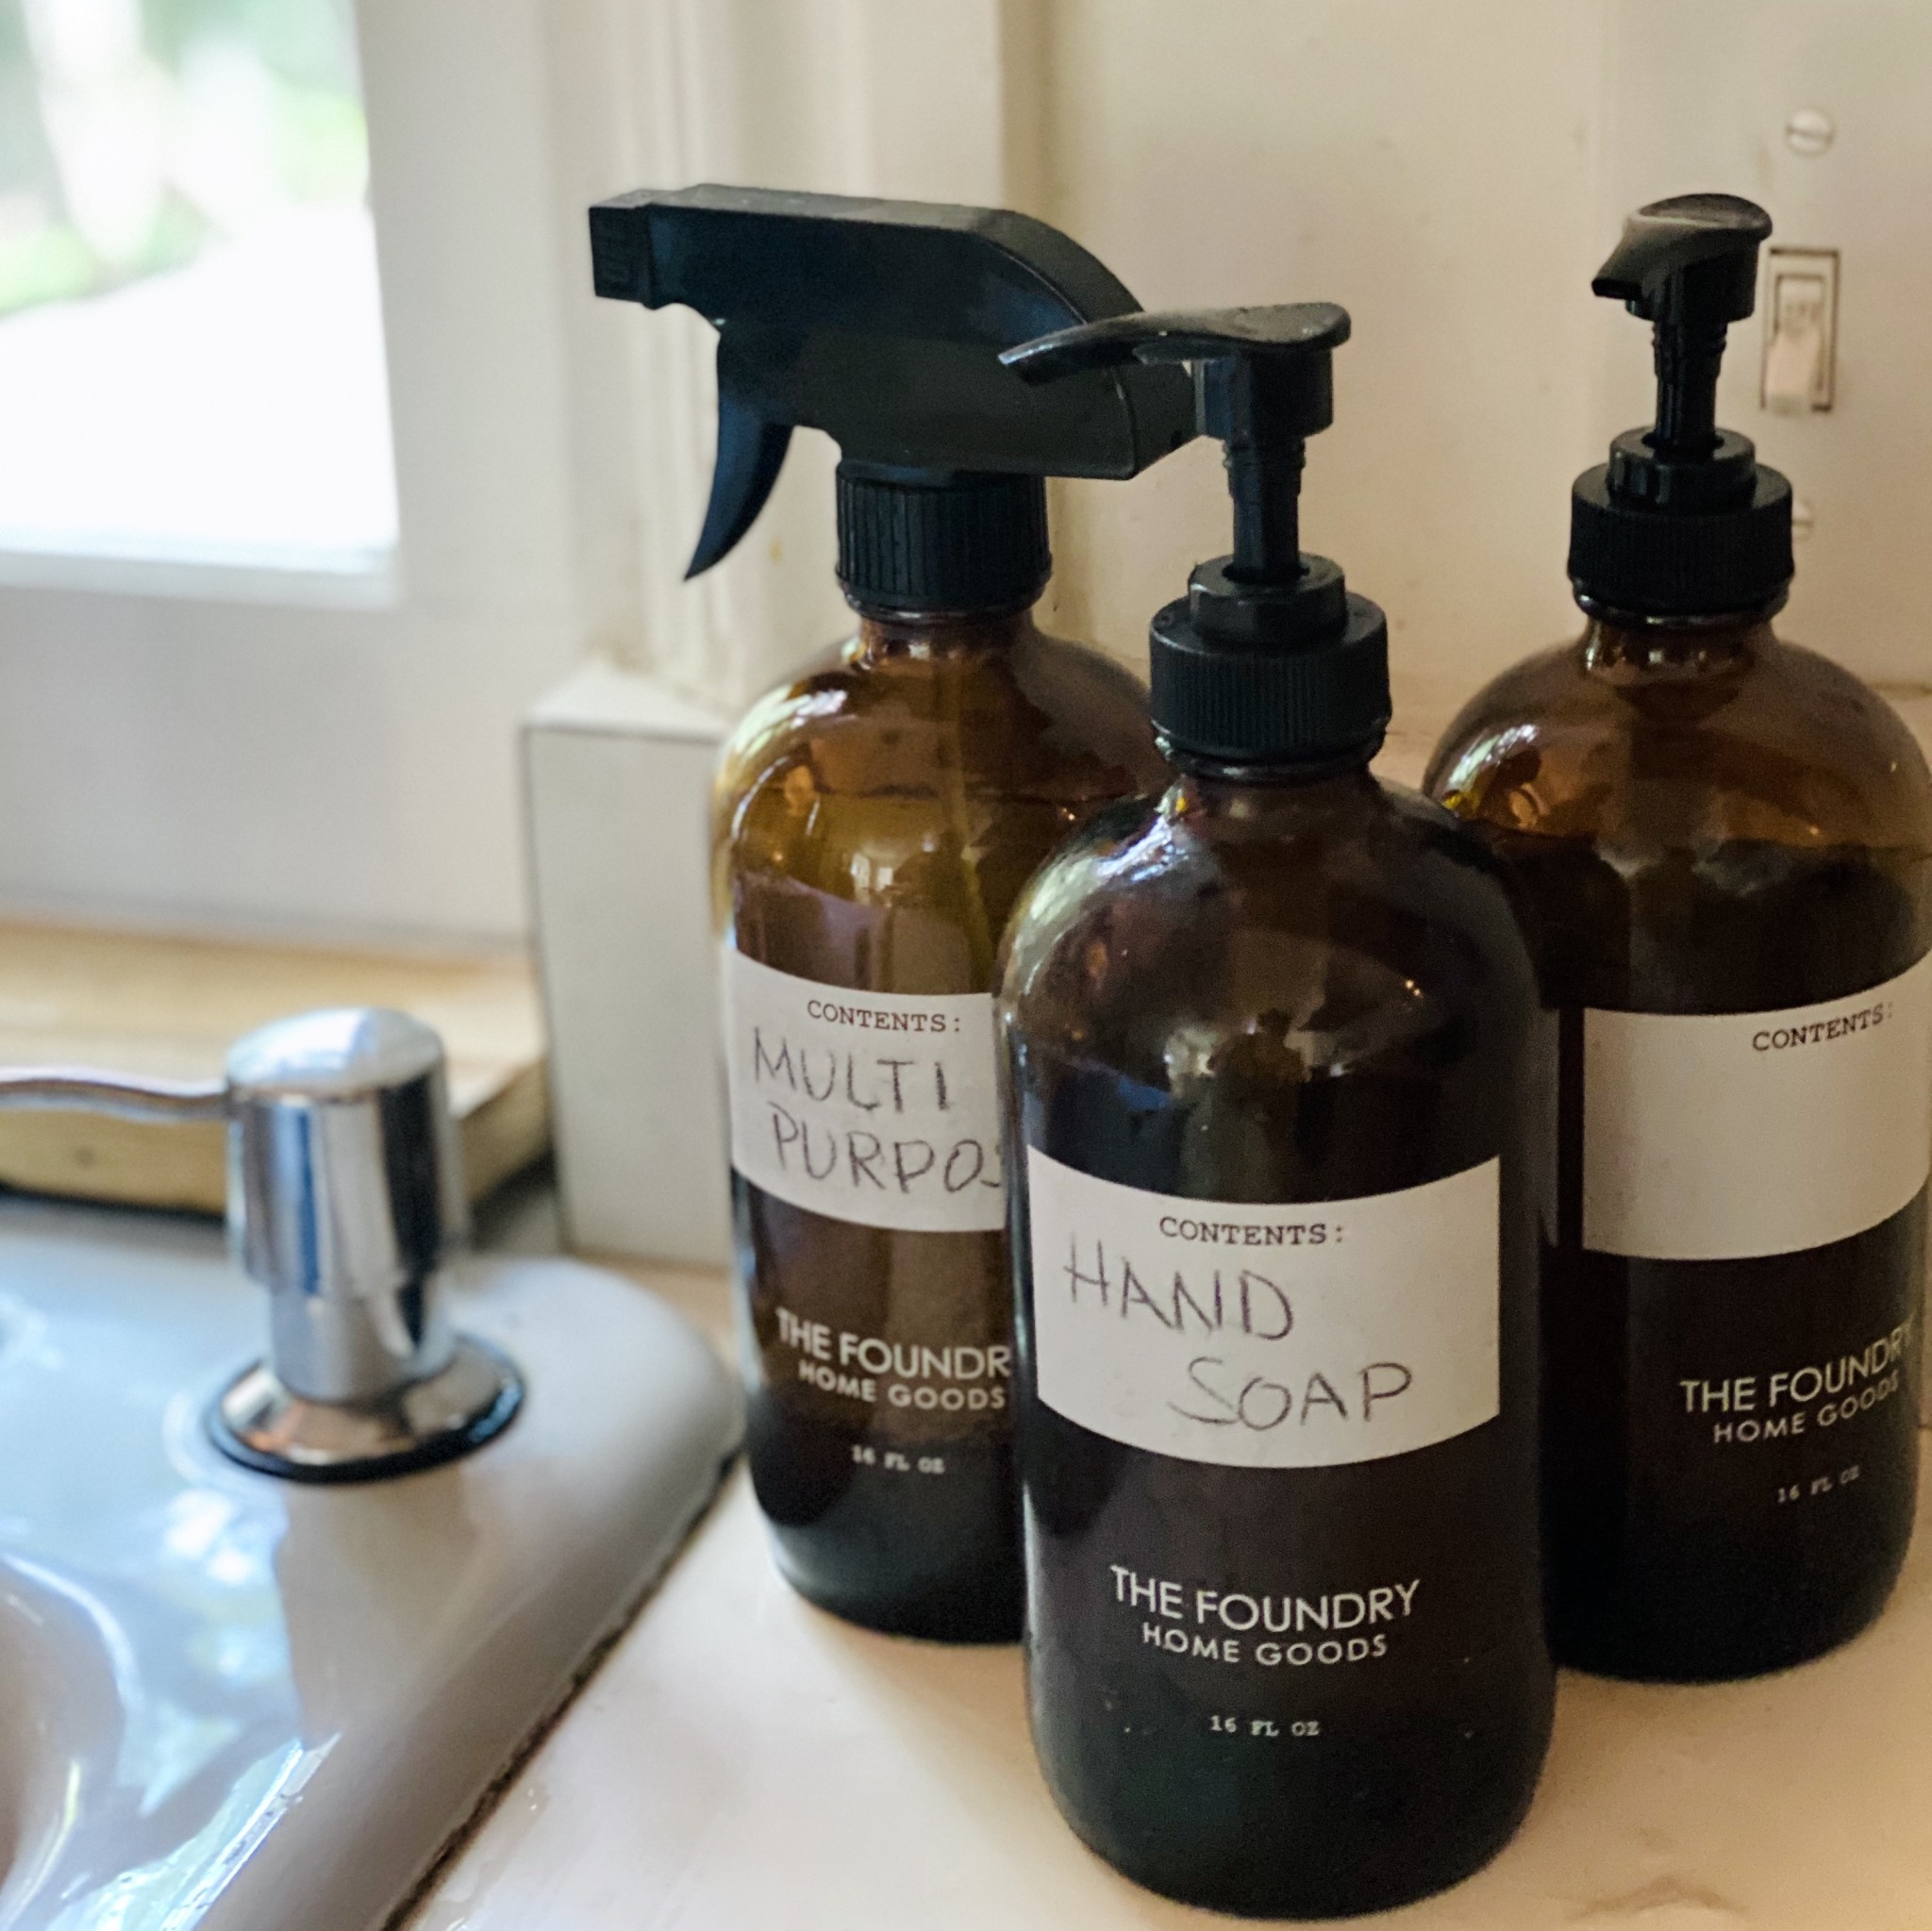 The Foundry Home Goods The Foundry Amber Glass Bottle 16oz + All Purpose Spray - Tea Tree